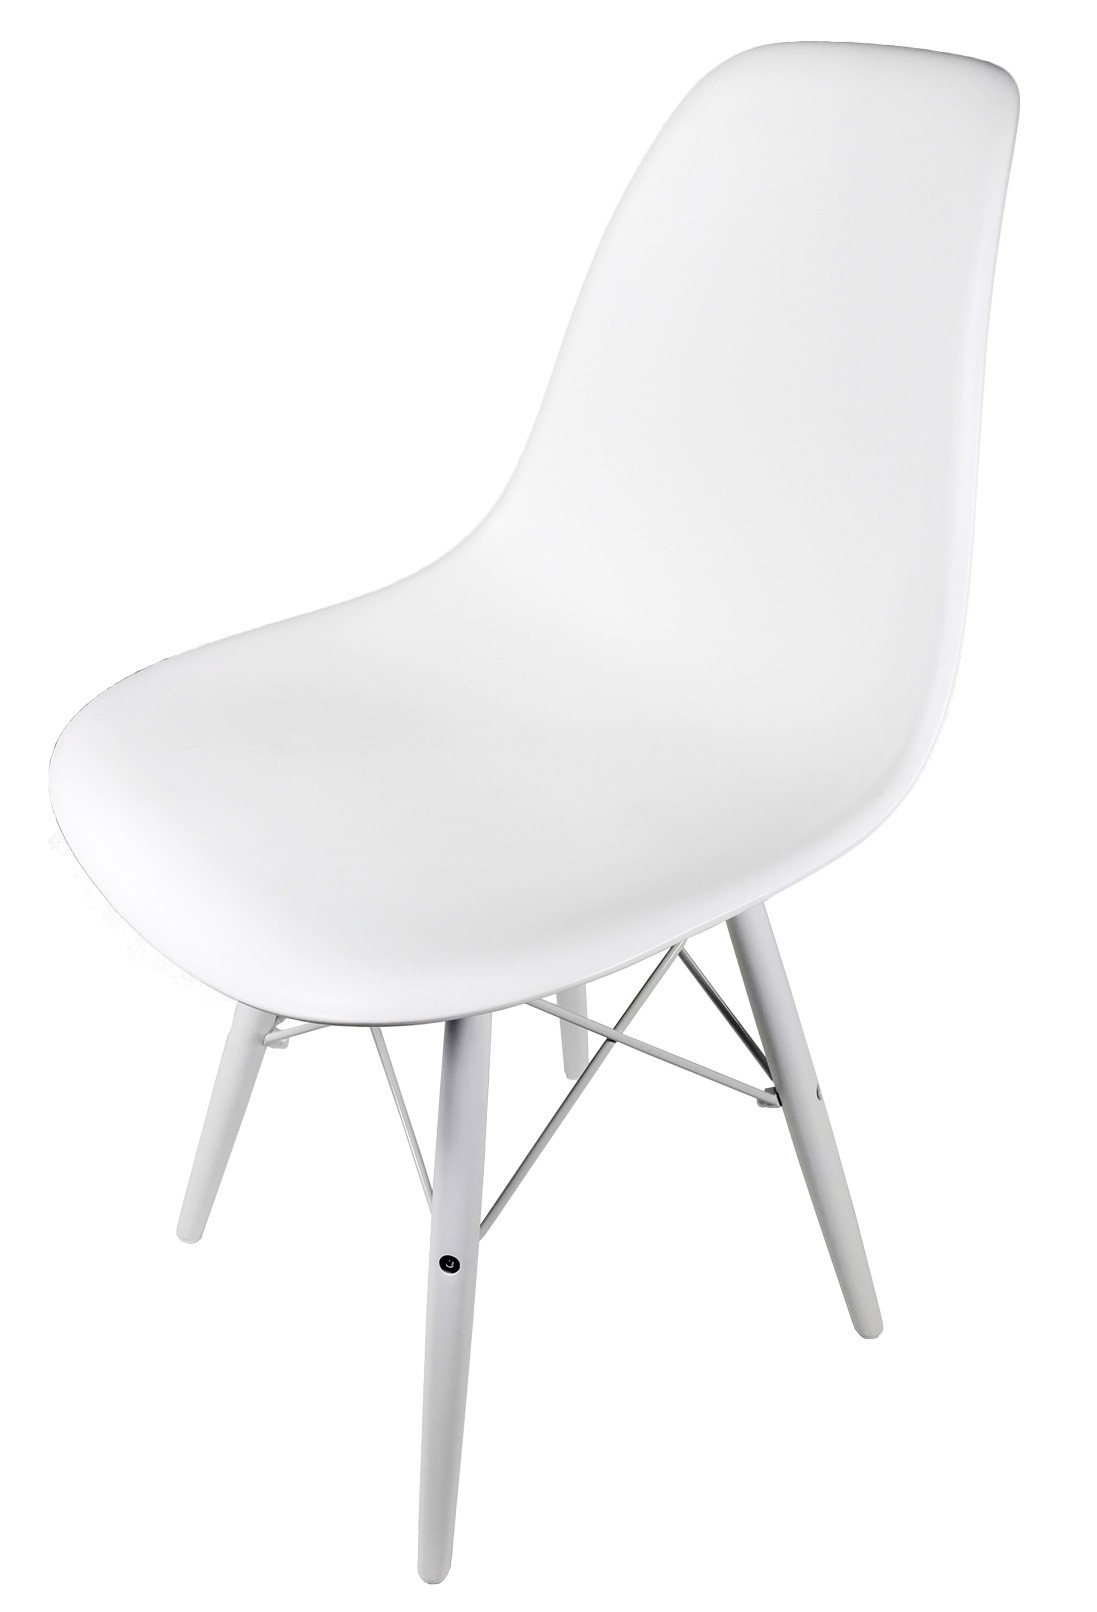 white plastic chair quest folding eames style dsw molded dining shell